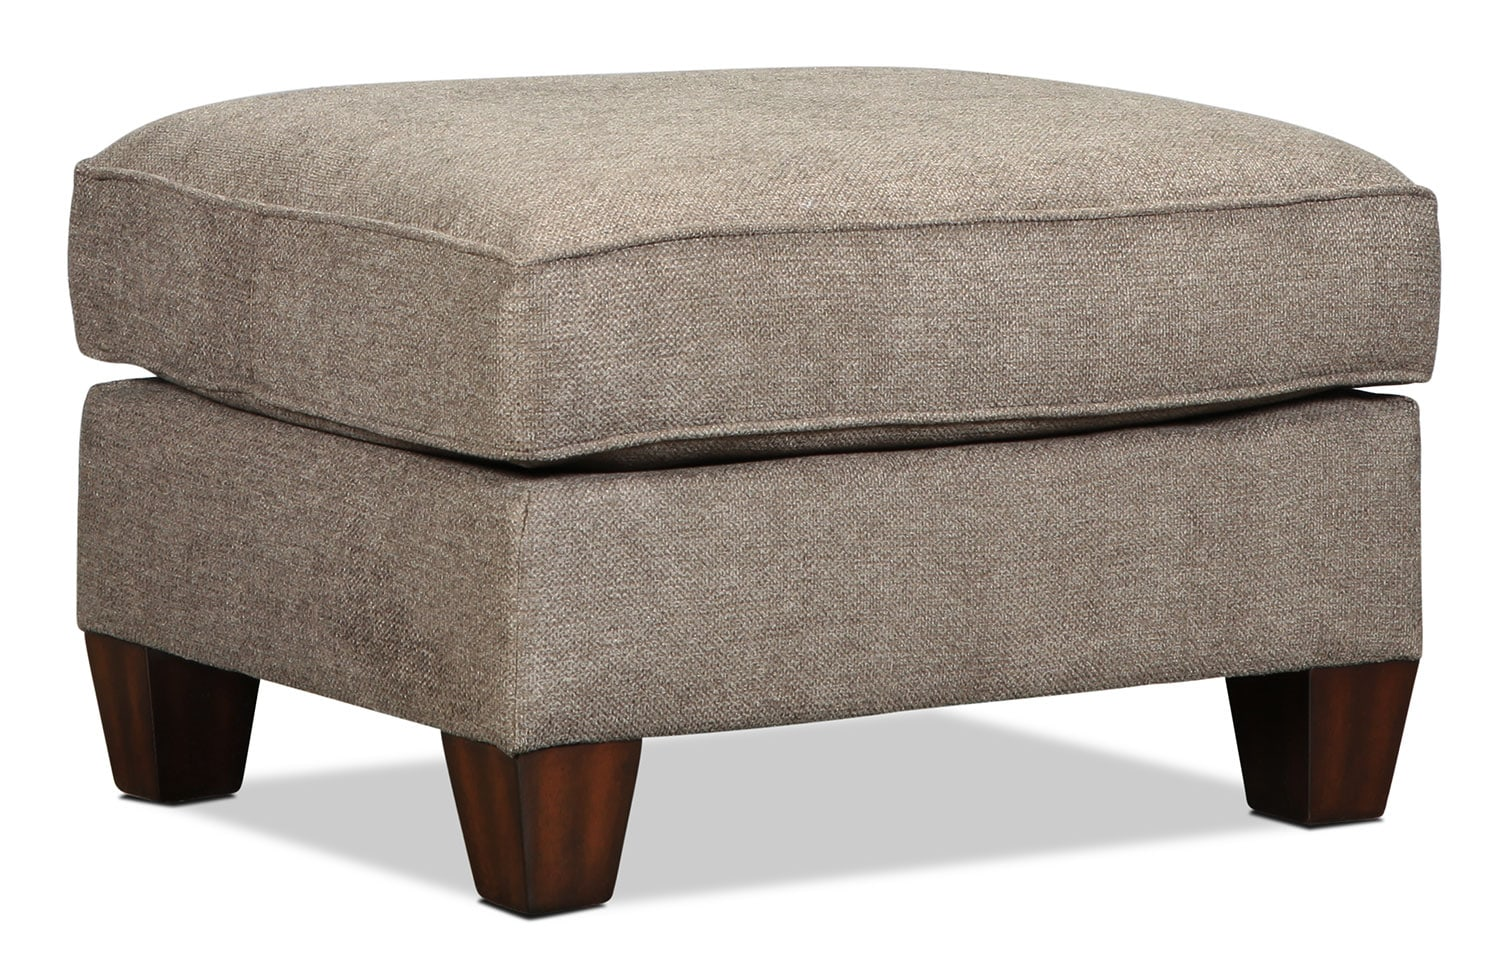 Living Room Furniture - Lonsdale Ottoman - Tan